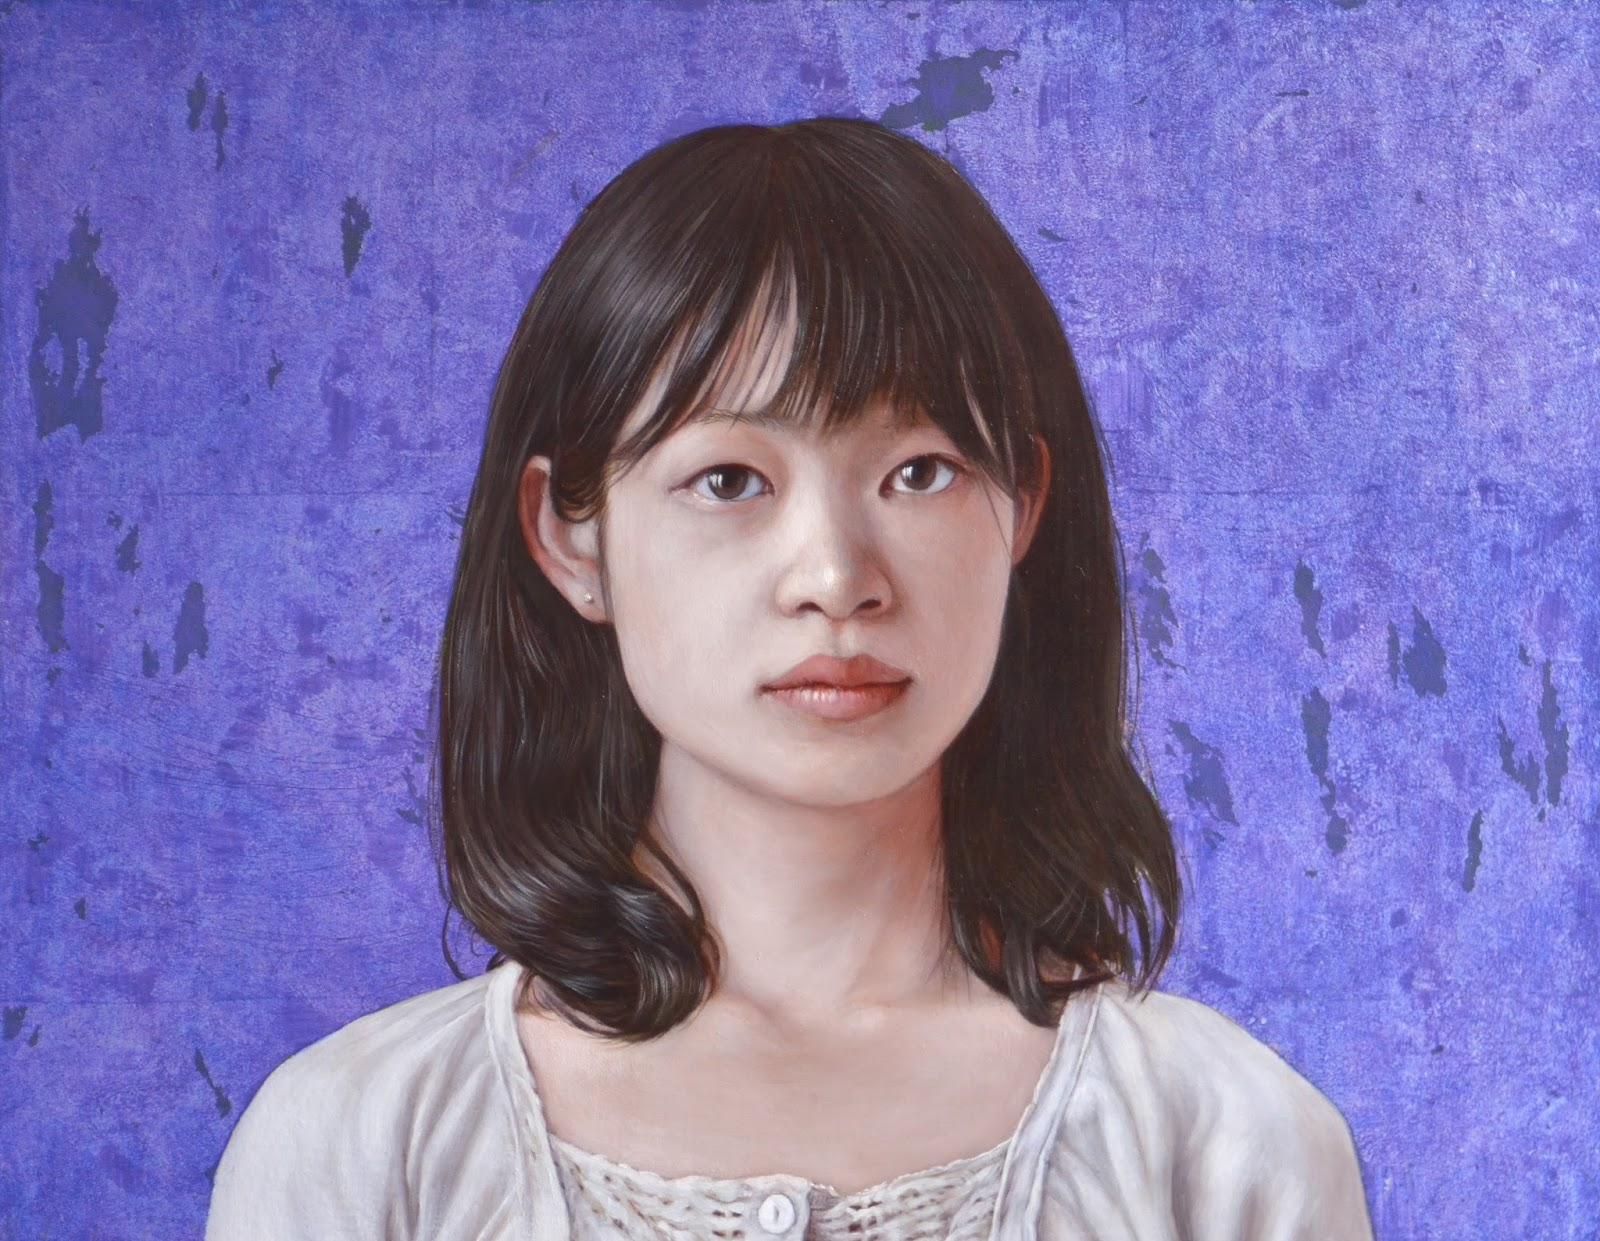 Girls Paintings By 長坂誠展(Makoto Nagasaka)